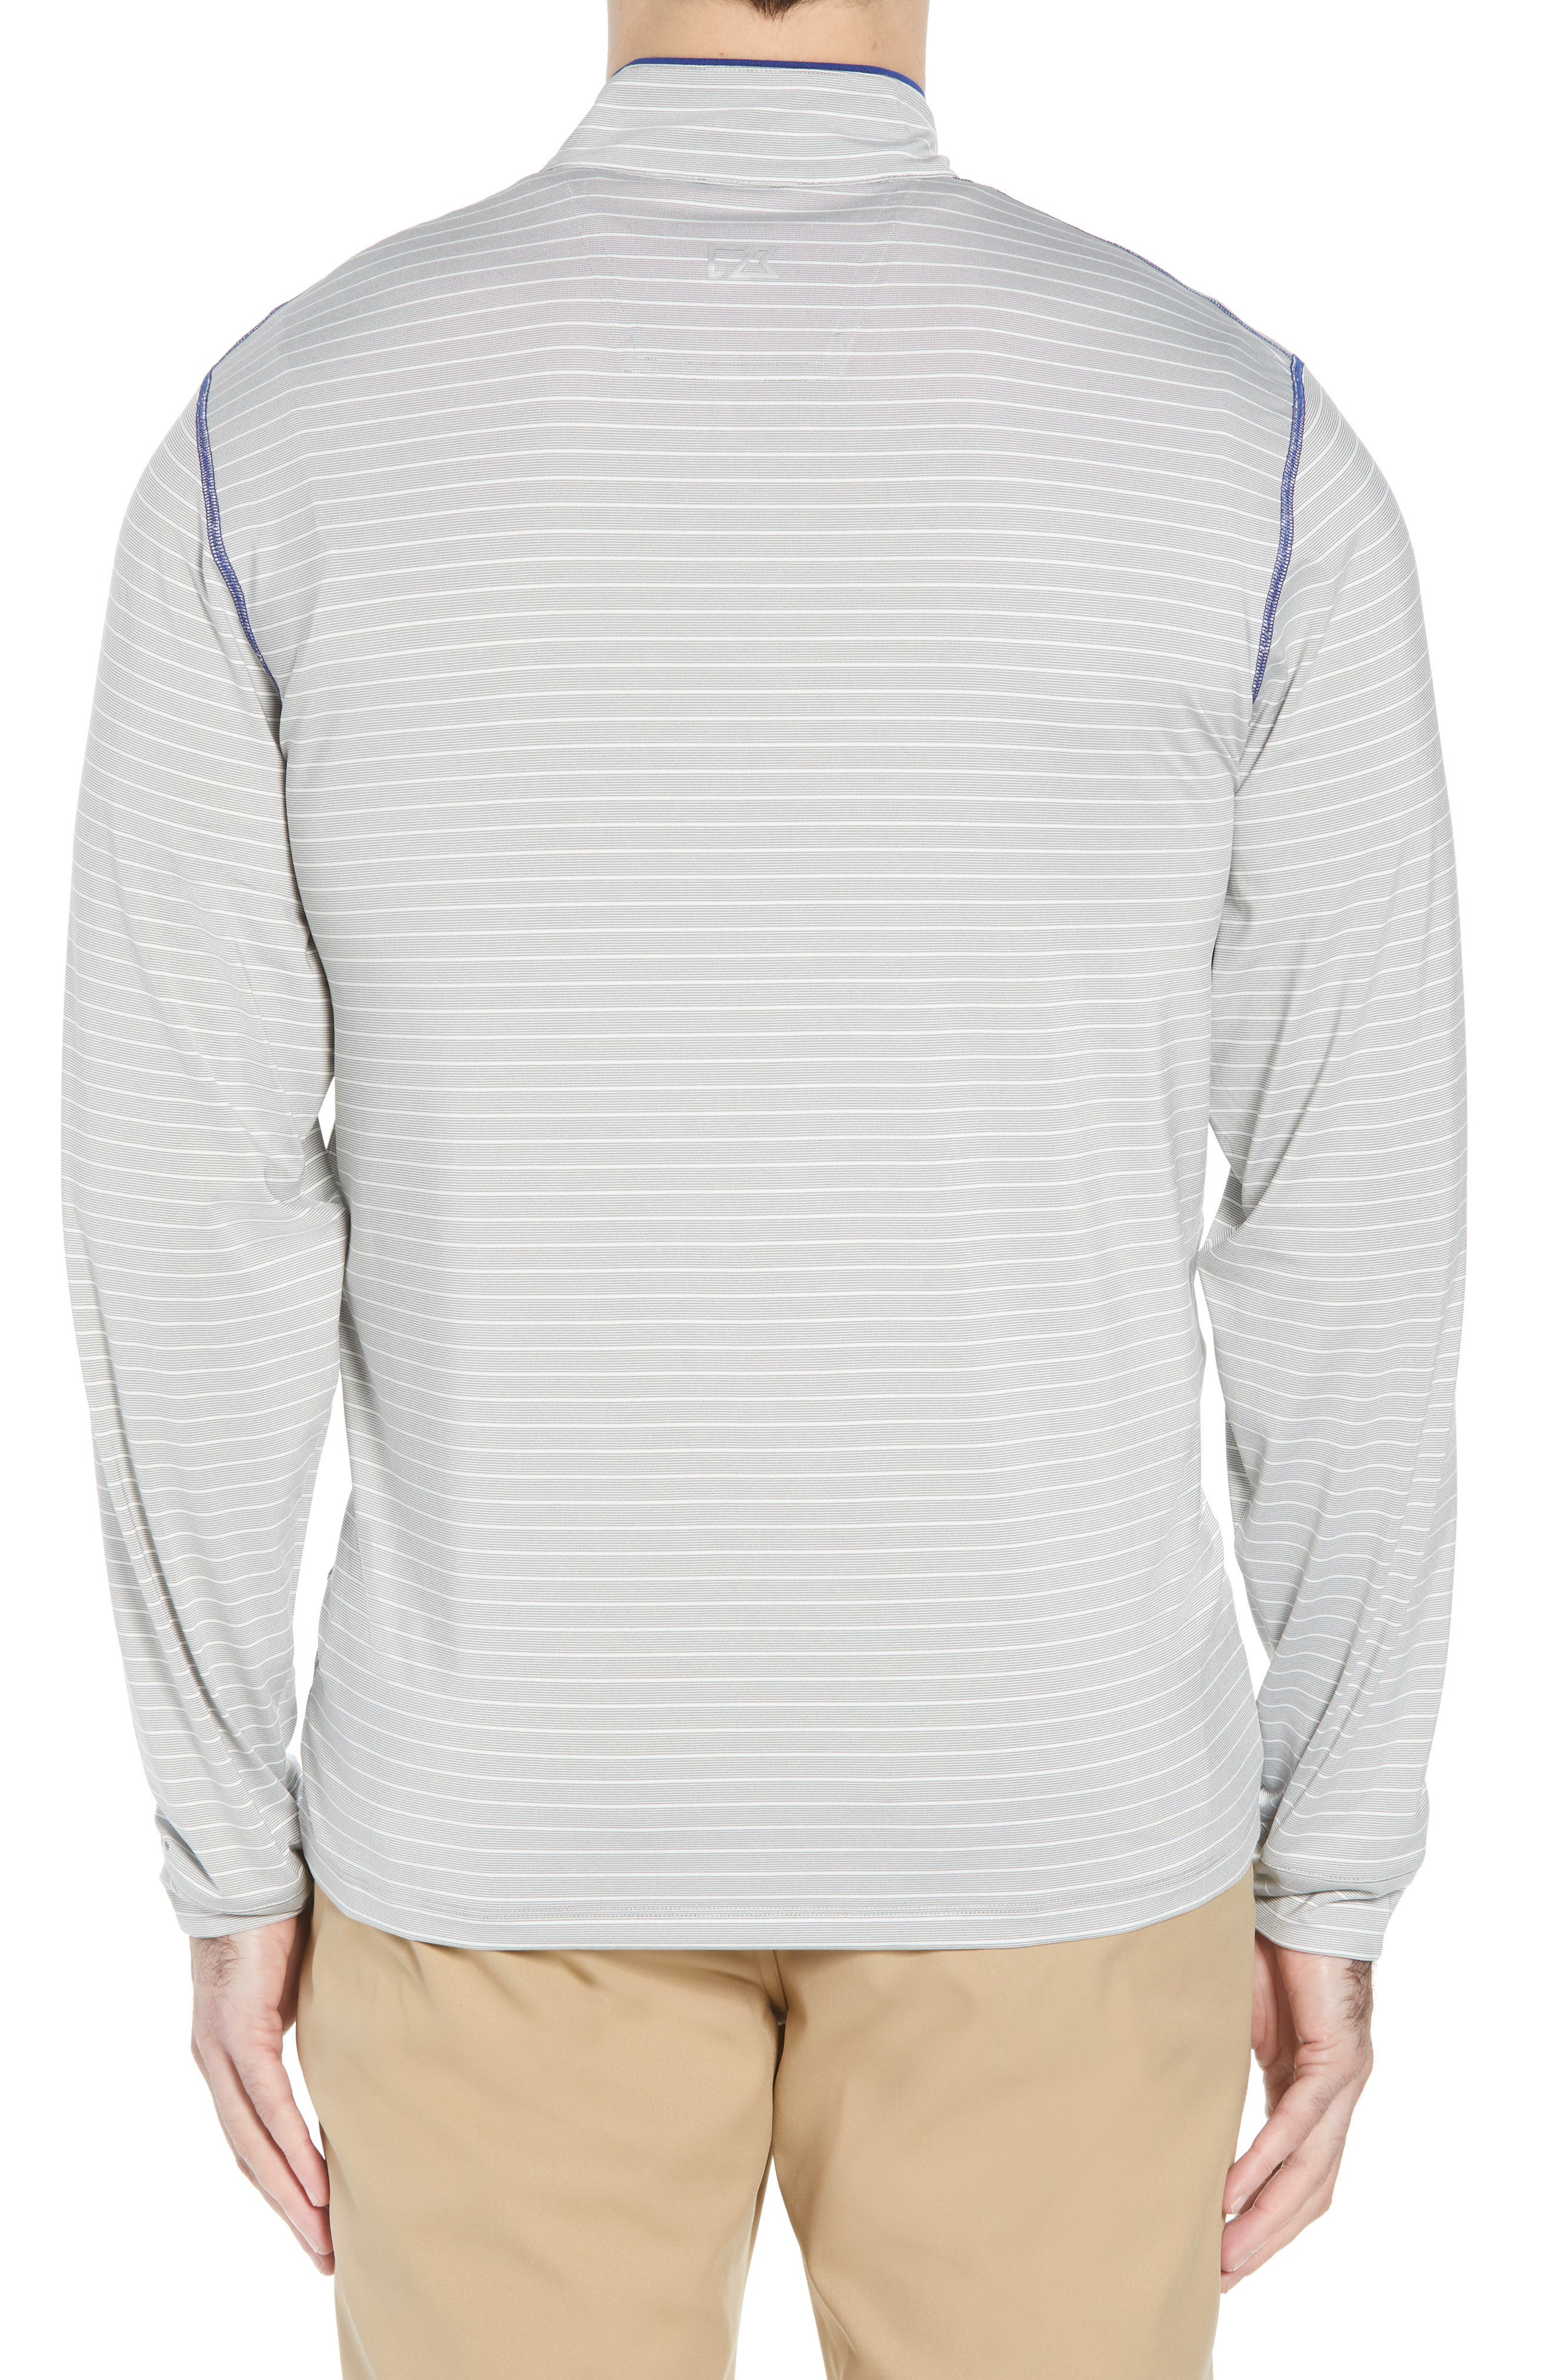 Meridian - Indianapolis Colts Regular Fit Half Zip Pullover,                             Alternate thumbnail 2, color,                             TOUR BLUE